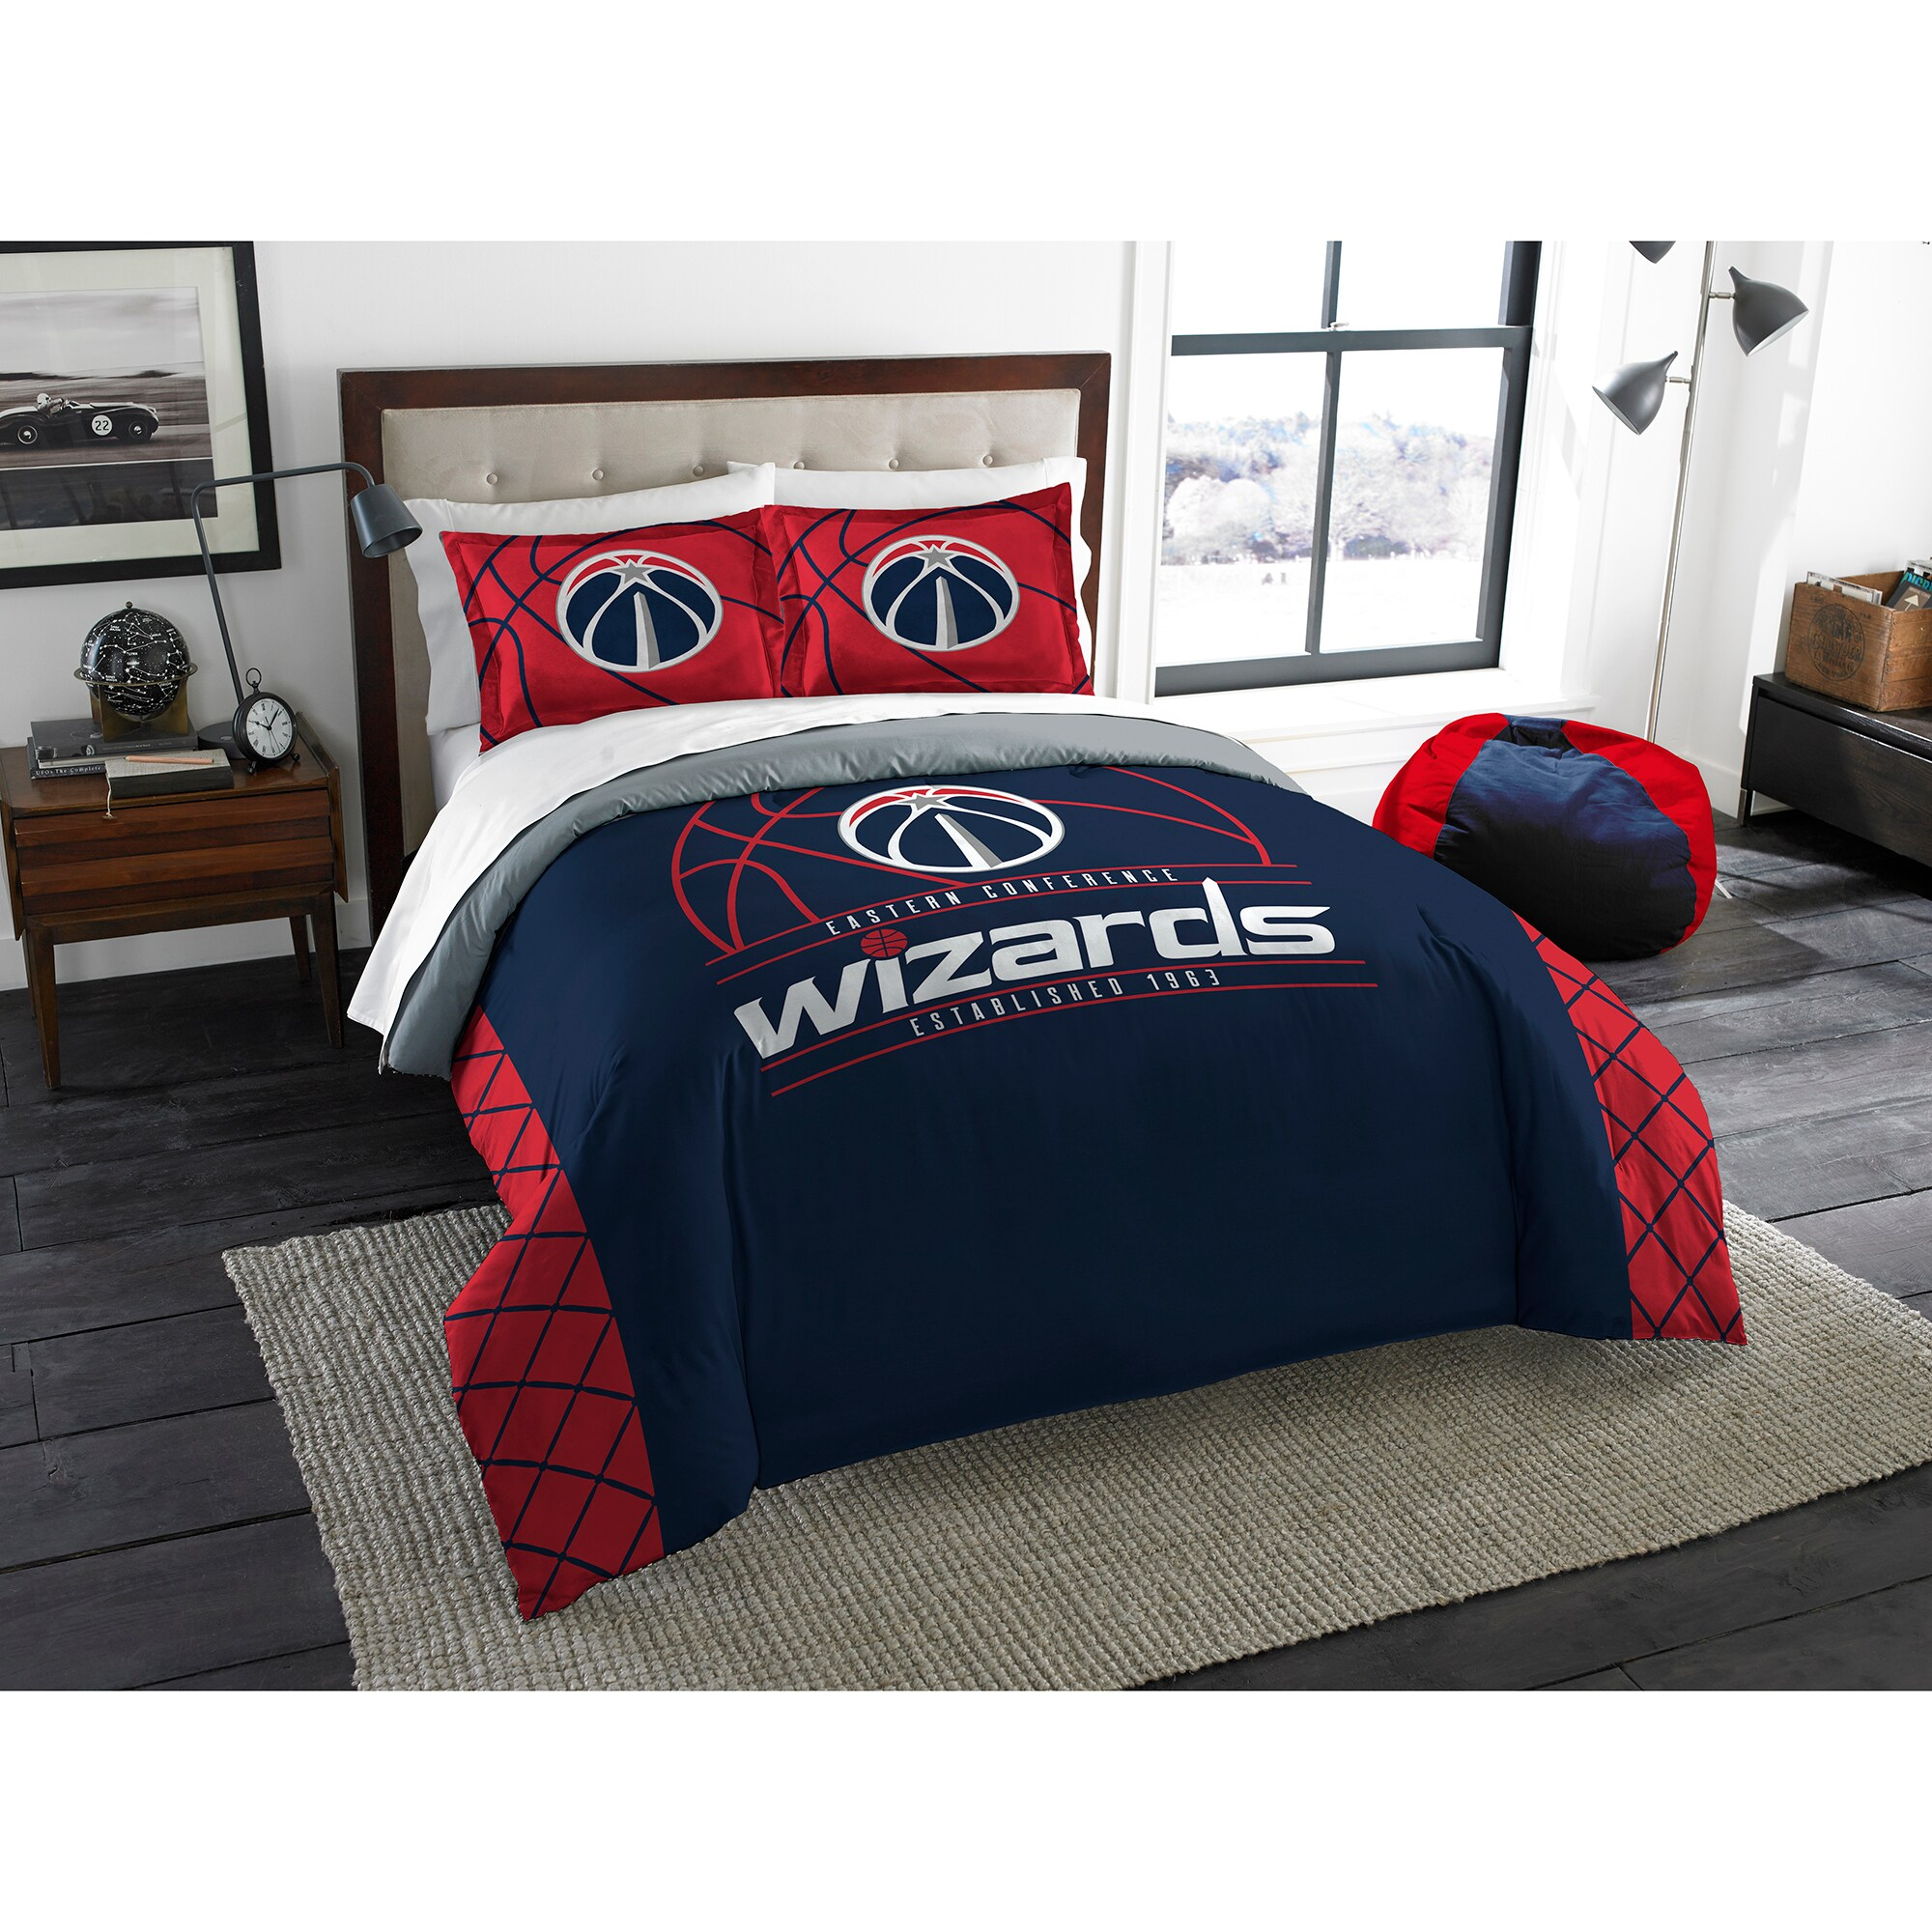 Washington Wizards The Northwest Company Reverse Slam Full/Queen Comforter Set